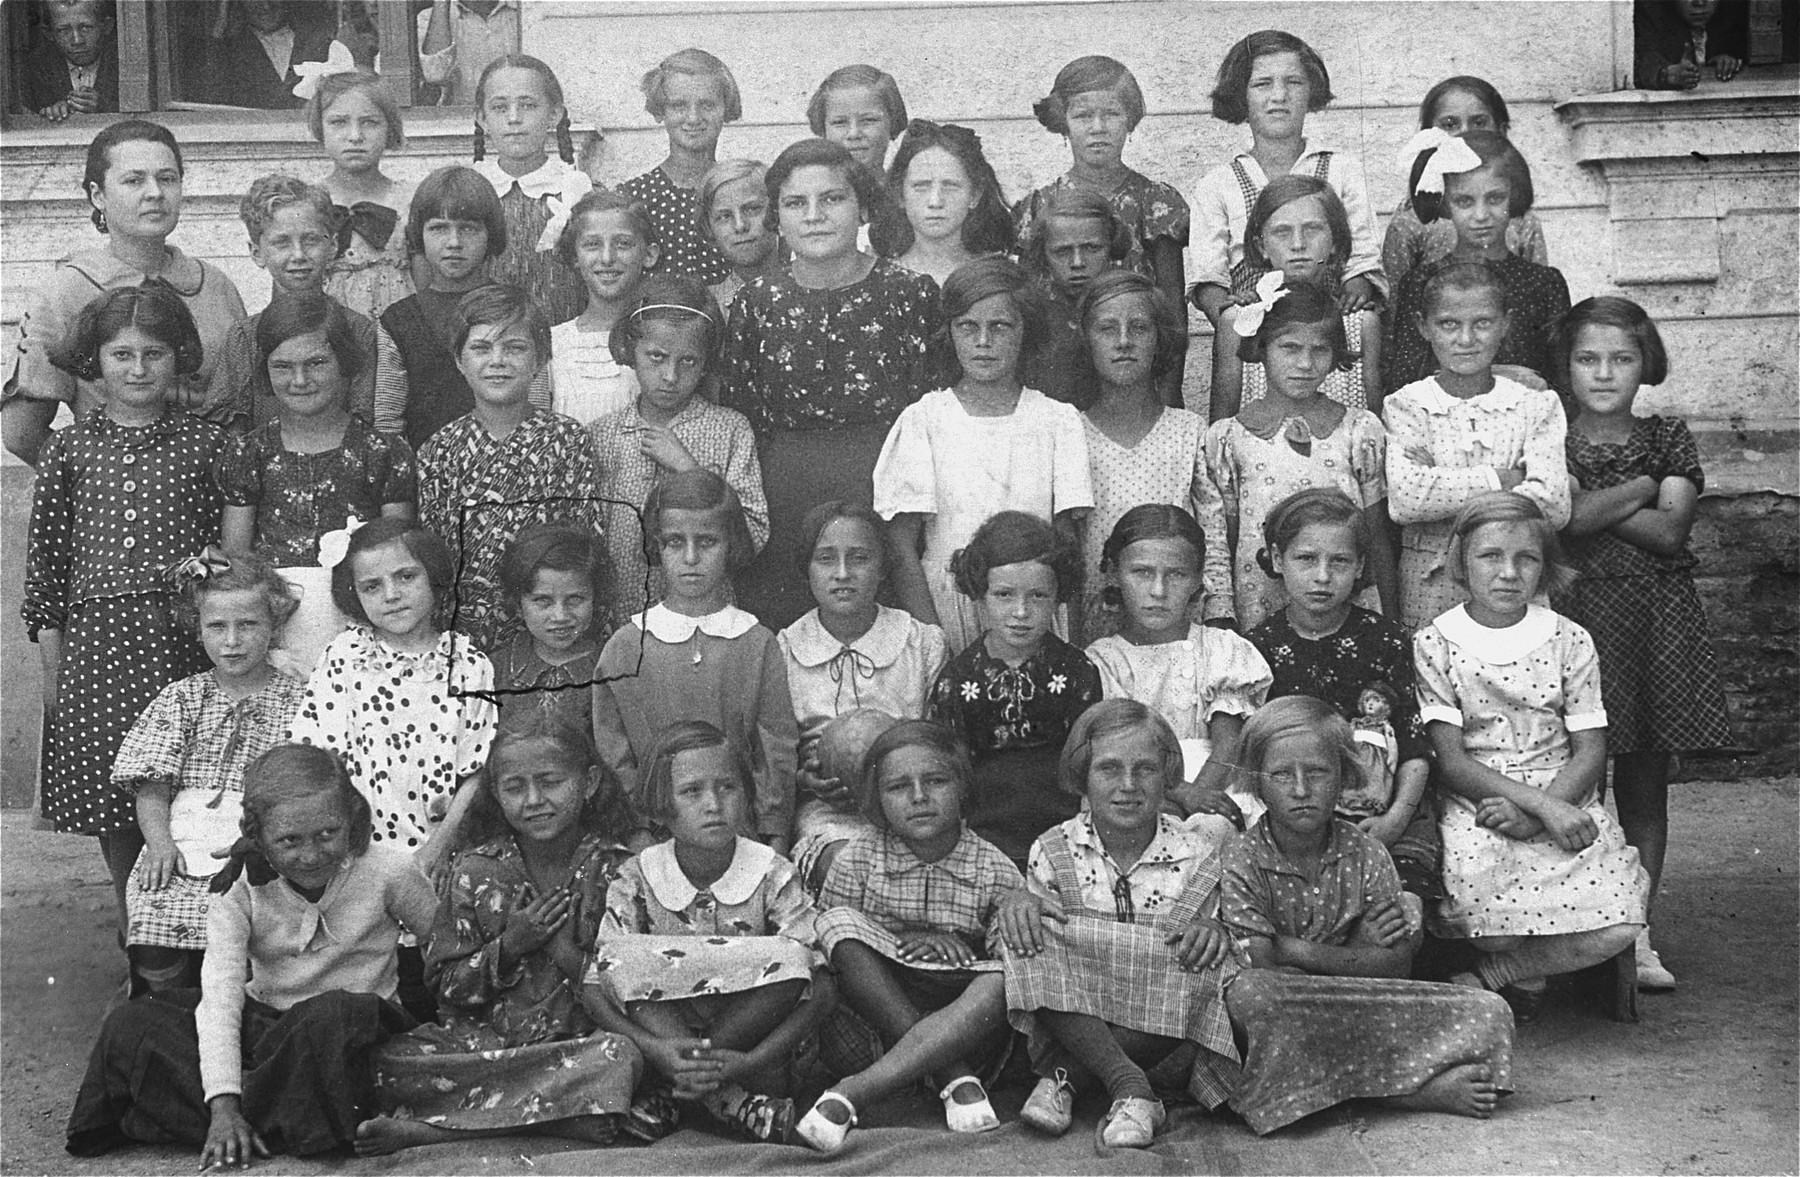 Group portrait of first grade students and teachers at a public school in Vinogradov, Ukraine.    Among those pictured is 6-year-old Edith Rottenstein (second row, third from the left).  Edith survived the Auschwitz and Stutthof concentration camps.